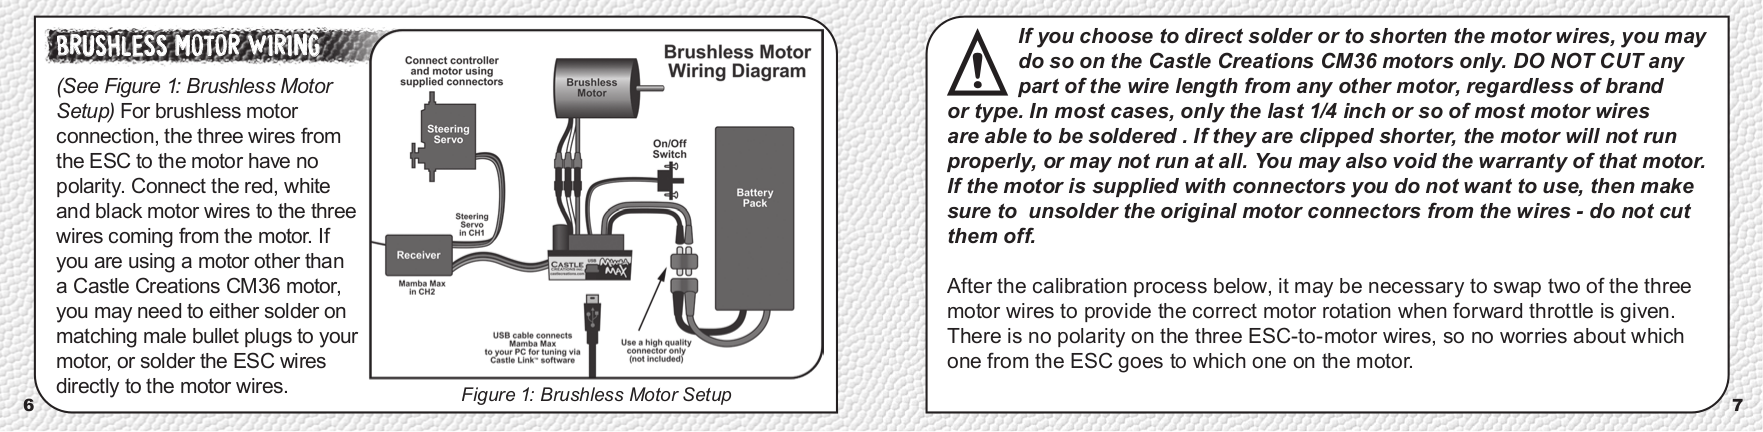 Fantastic Esc Wiring Diagram Crest - Wiring Diagram Ideas - blogitia.com